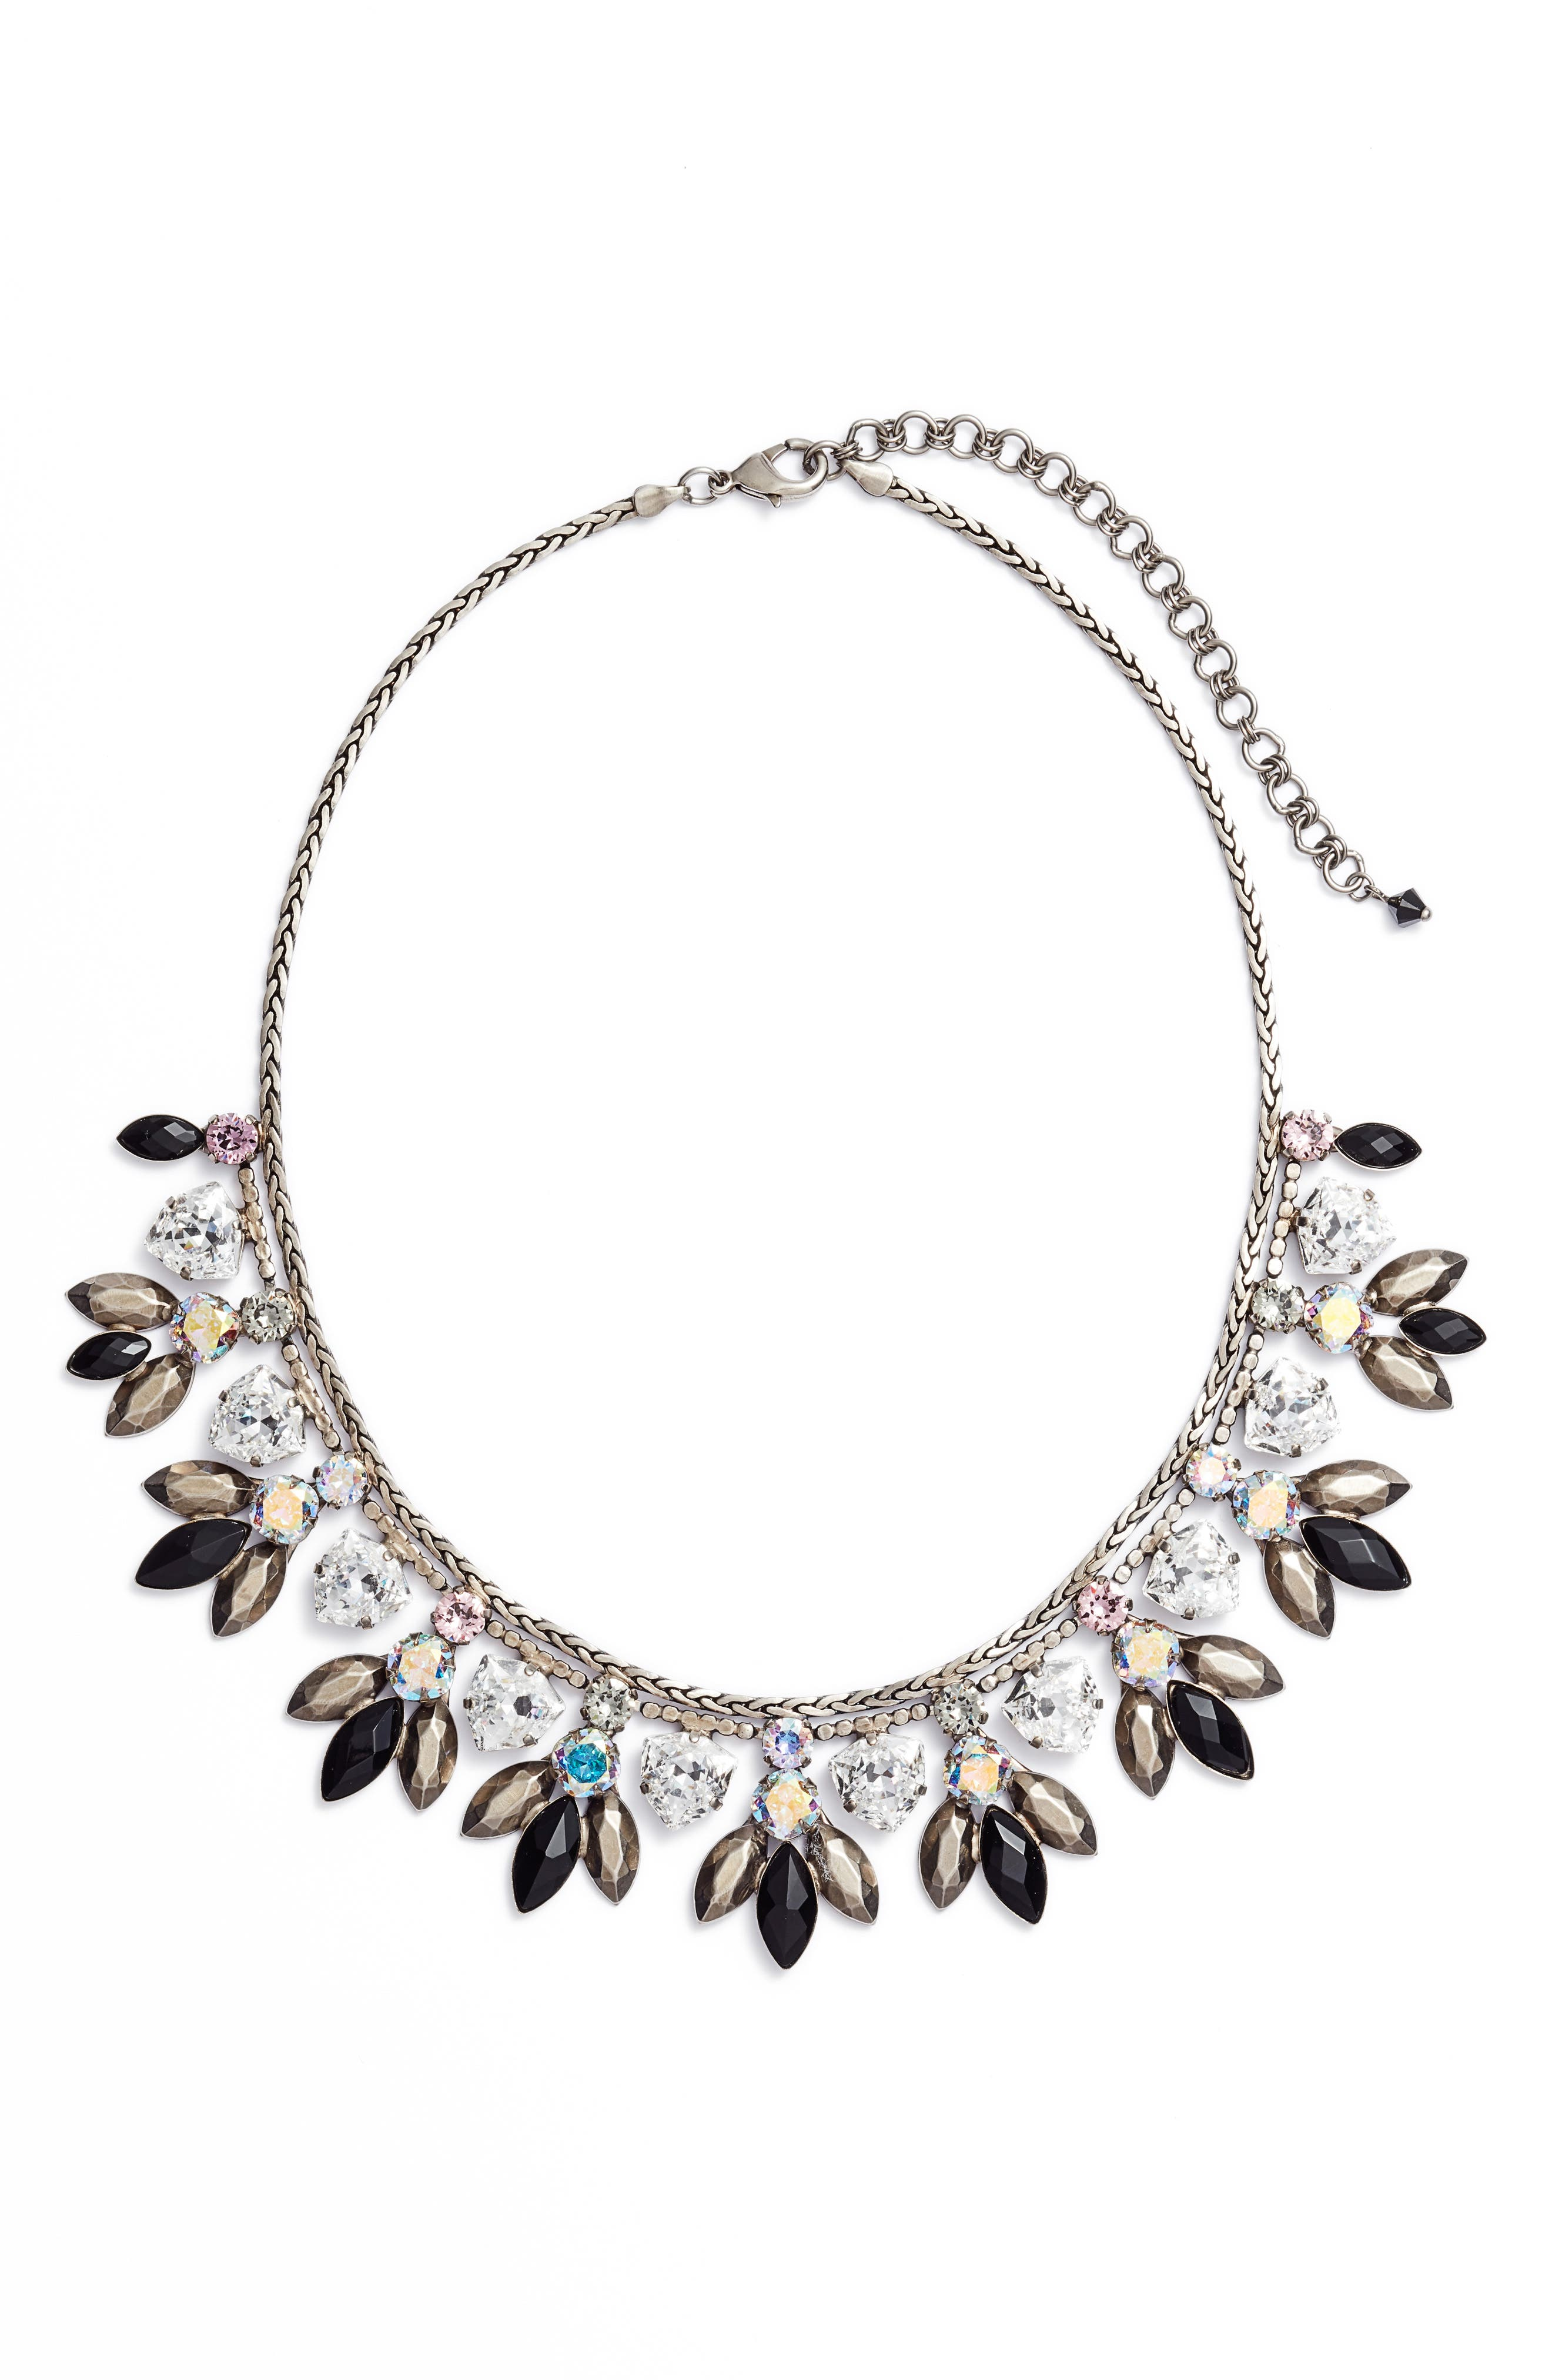 SORRELLI Metal & Crystal Bib Statement Necklace in Black